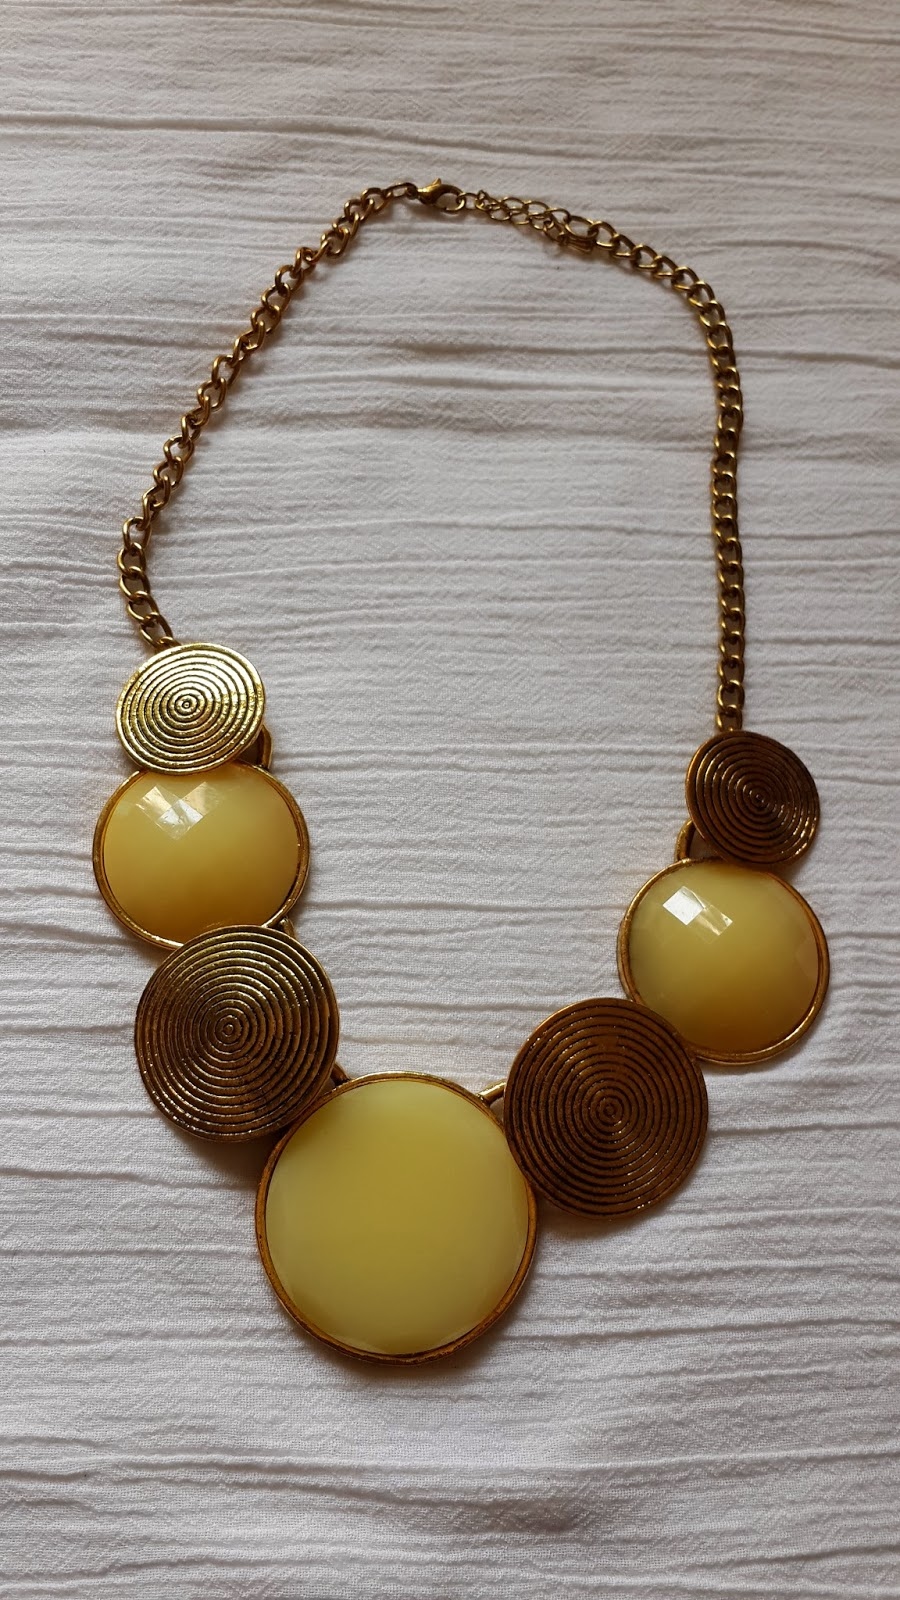 Statement Necklace-Bugis Market Singapore-Singapore Shopping- Singapore Statment Necklaces